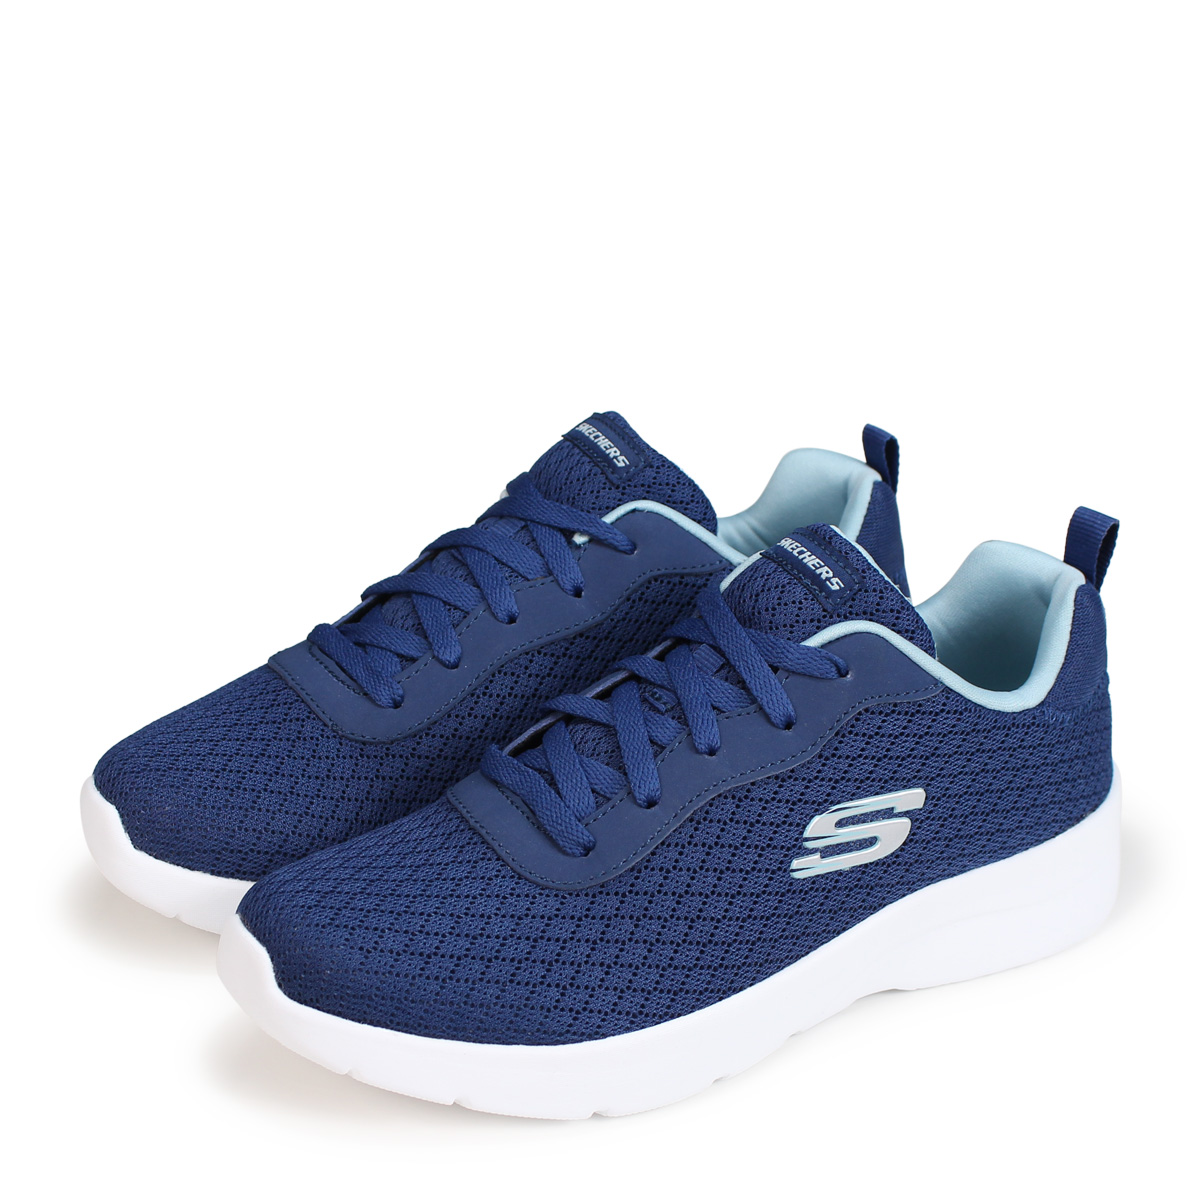 skechers navy blue sneakers